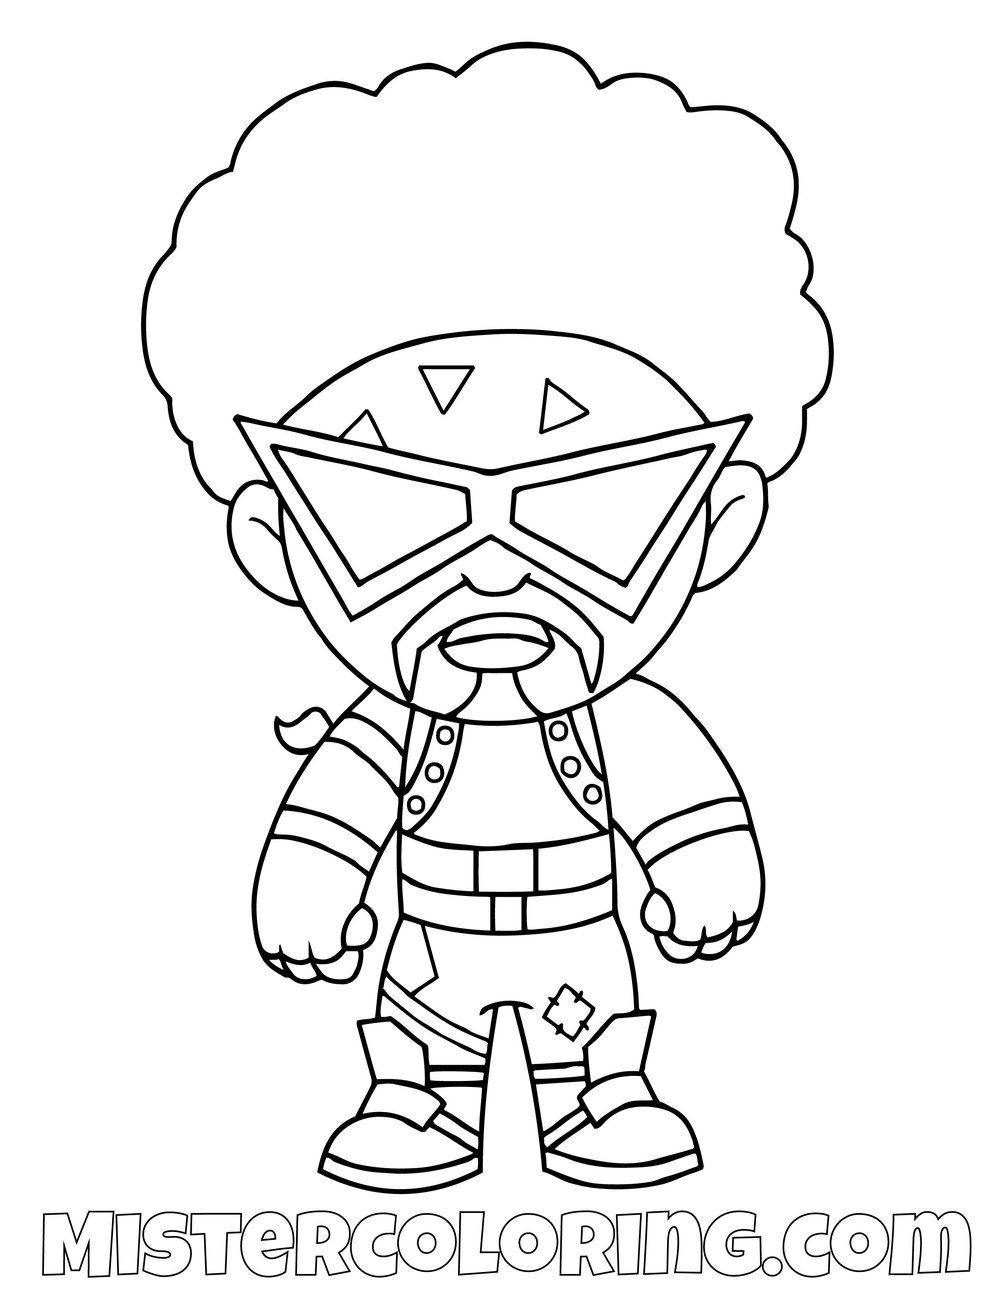 Free Funk Ops Chibi Fortnite Skin Coloring Page For Kids In